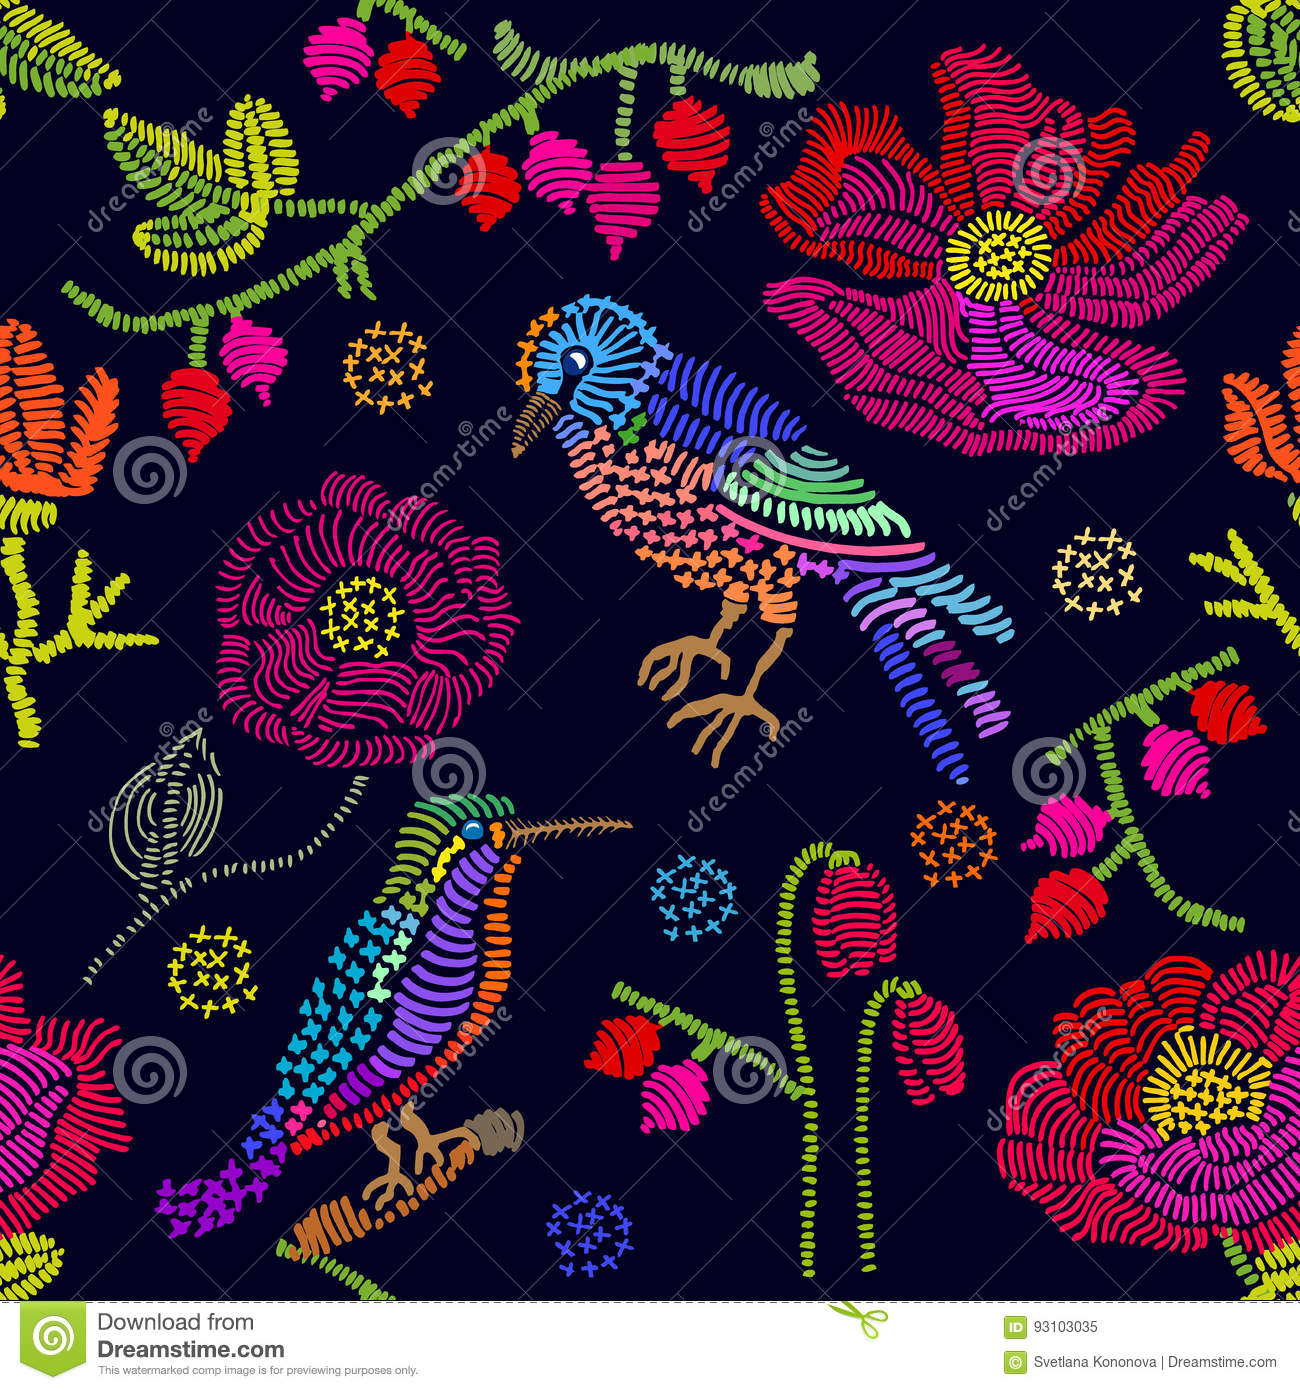 Flowers Made Black Brids: Embroidered Flowers And Birds On Black Background. Stock